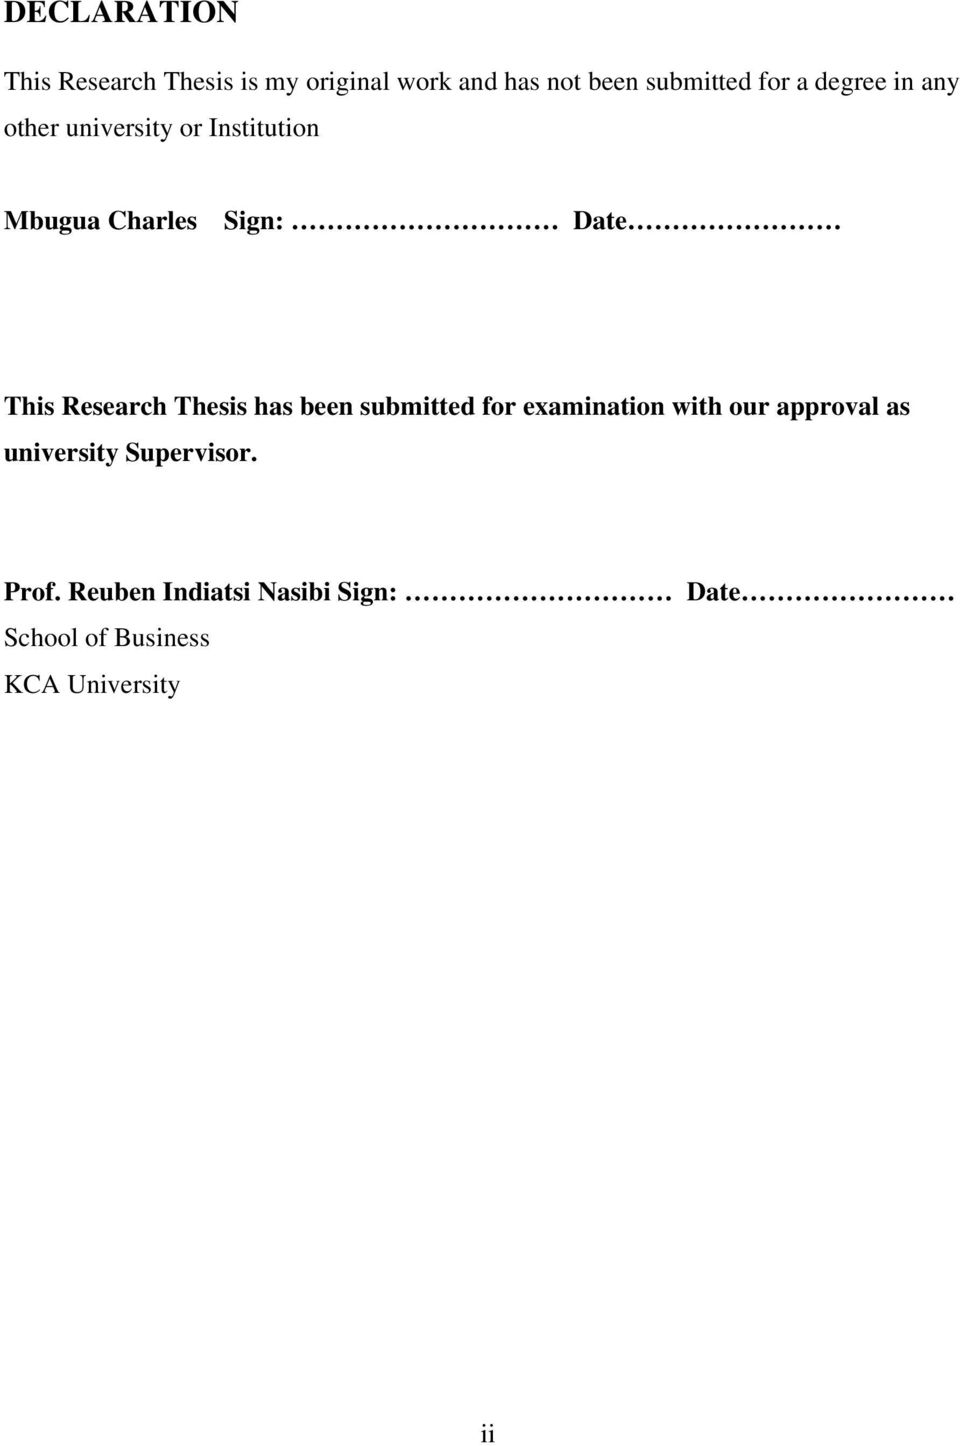 Research Thesis has been submitted for examination with our approval as university